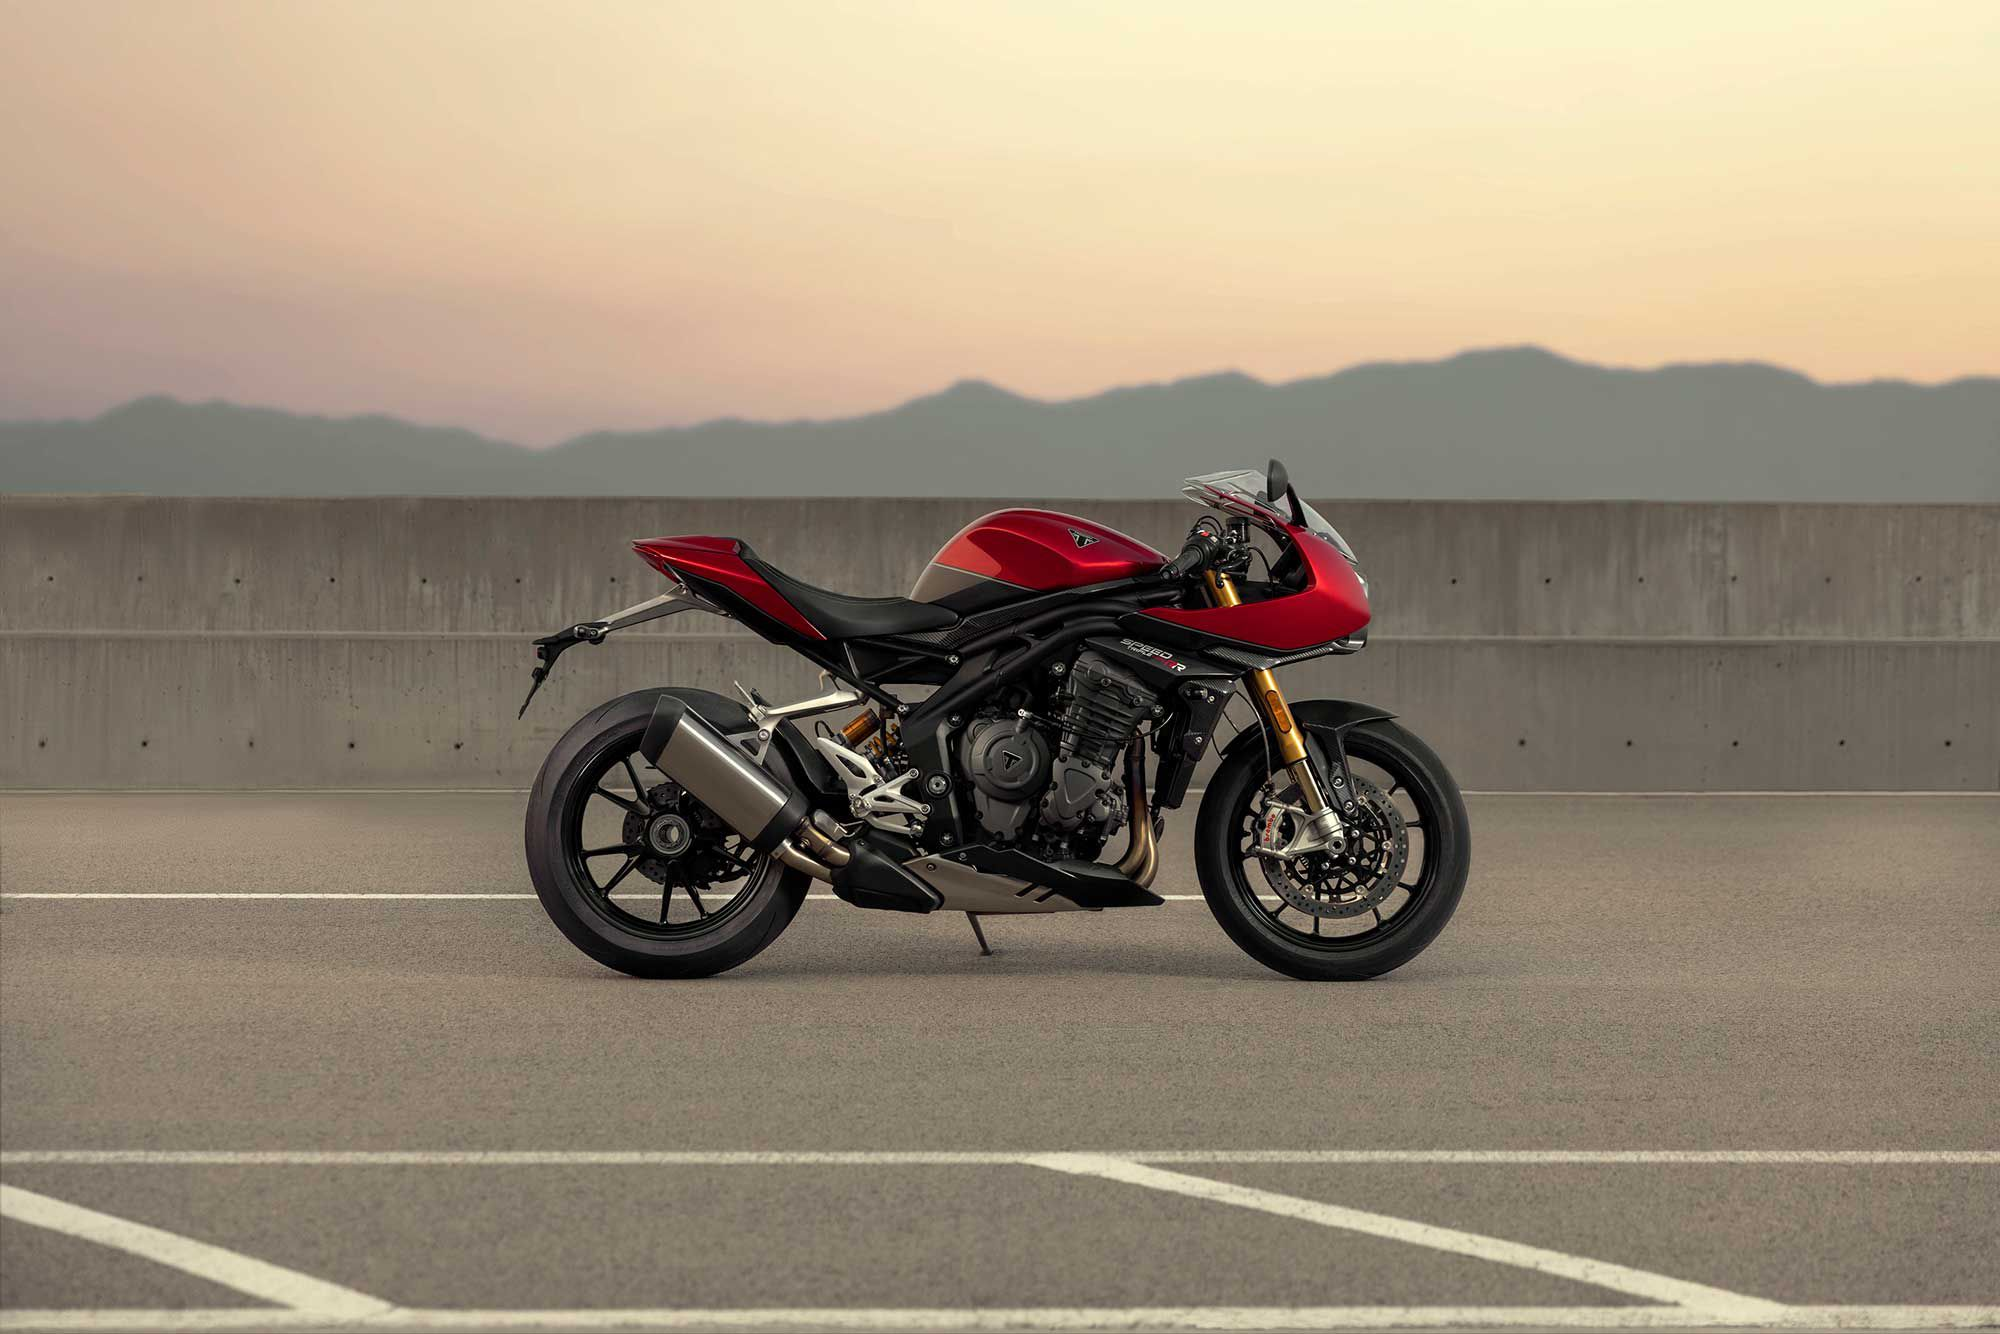 Triumph blends nods to cafe styling with an aggressive, sportbike stance.